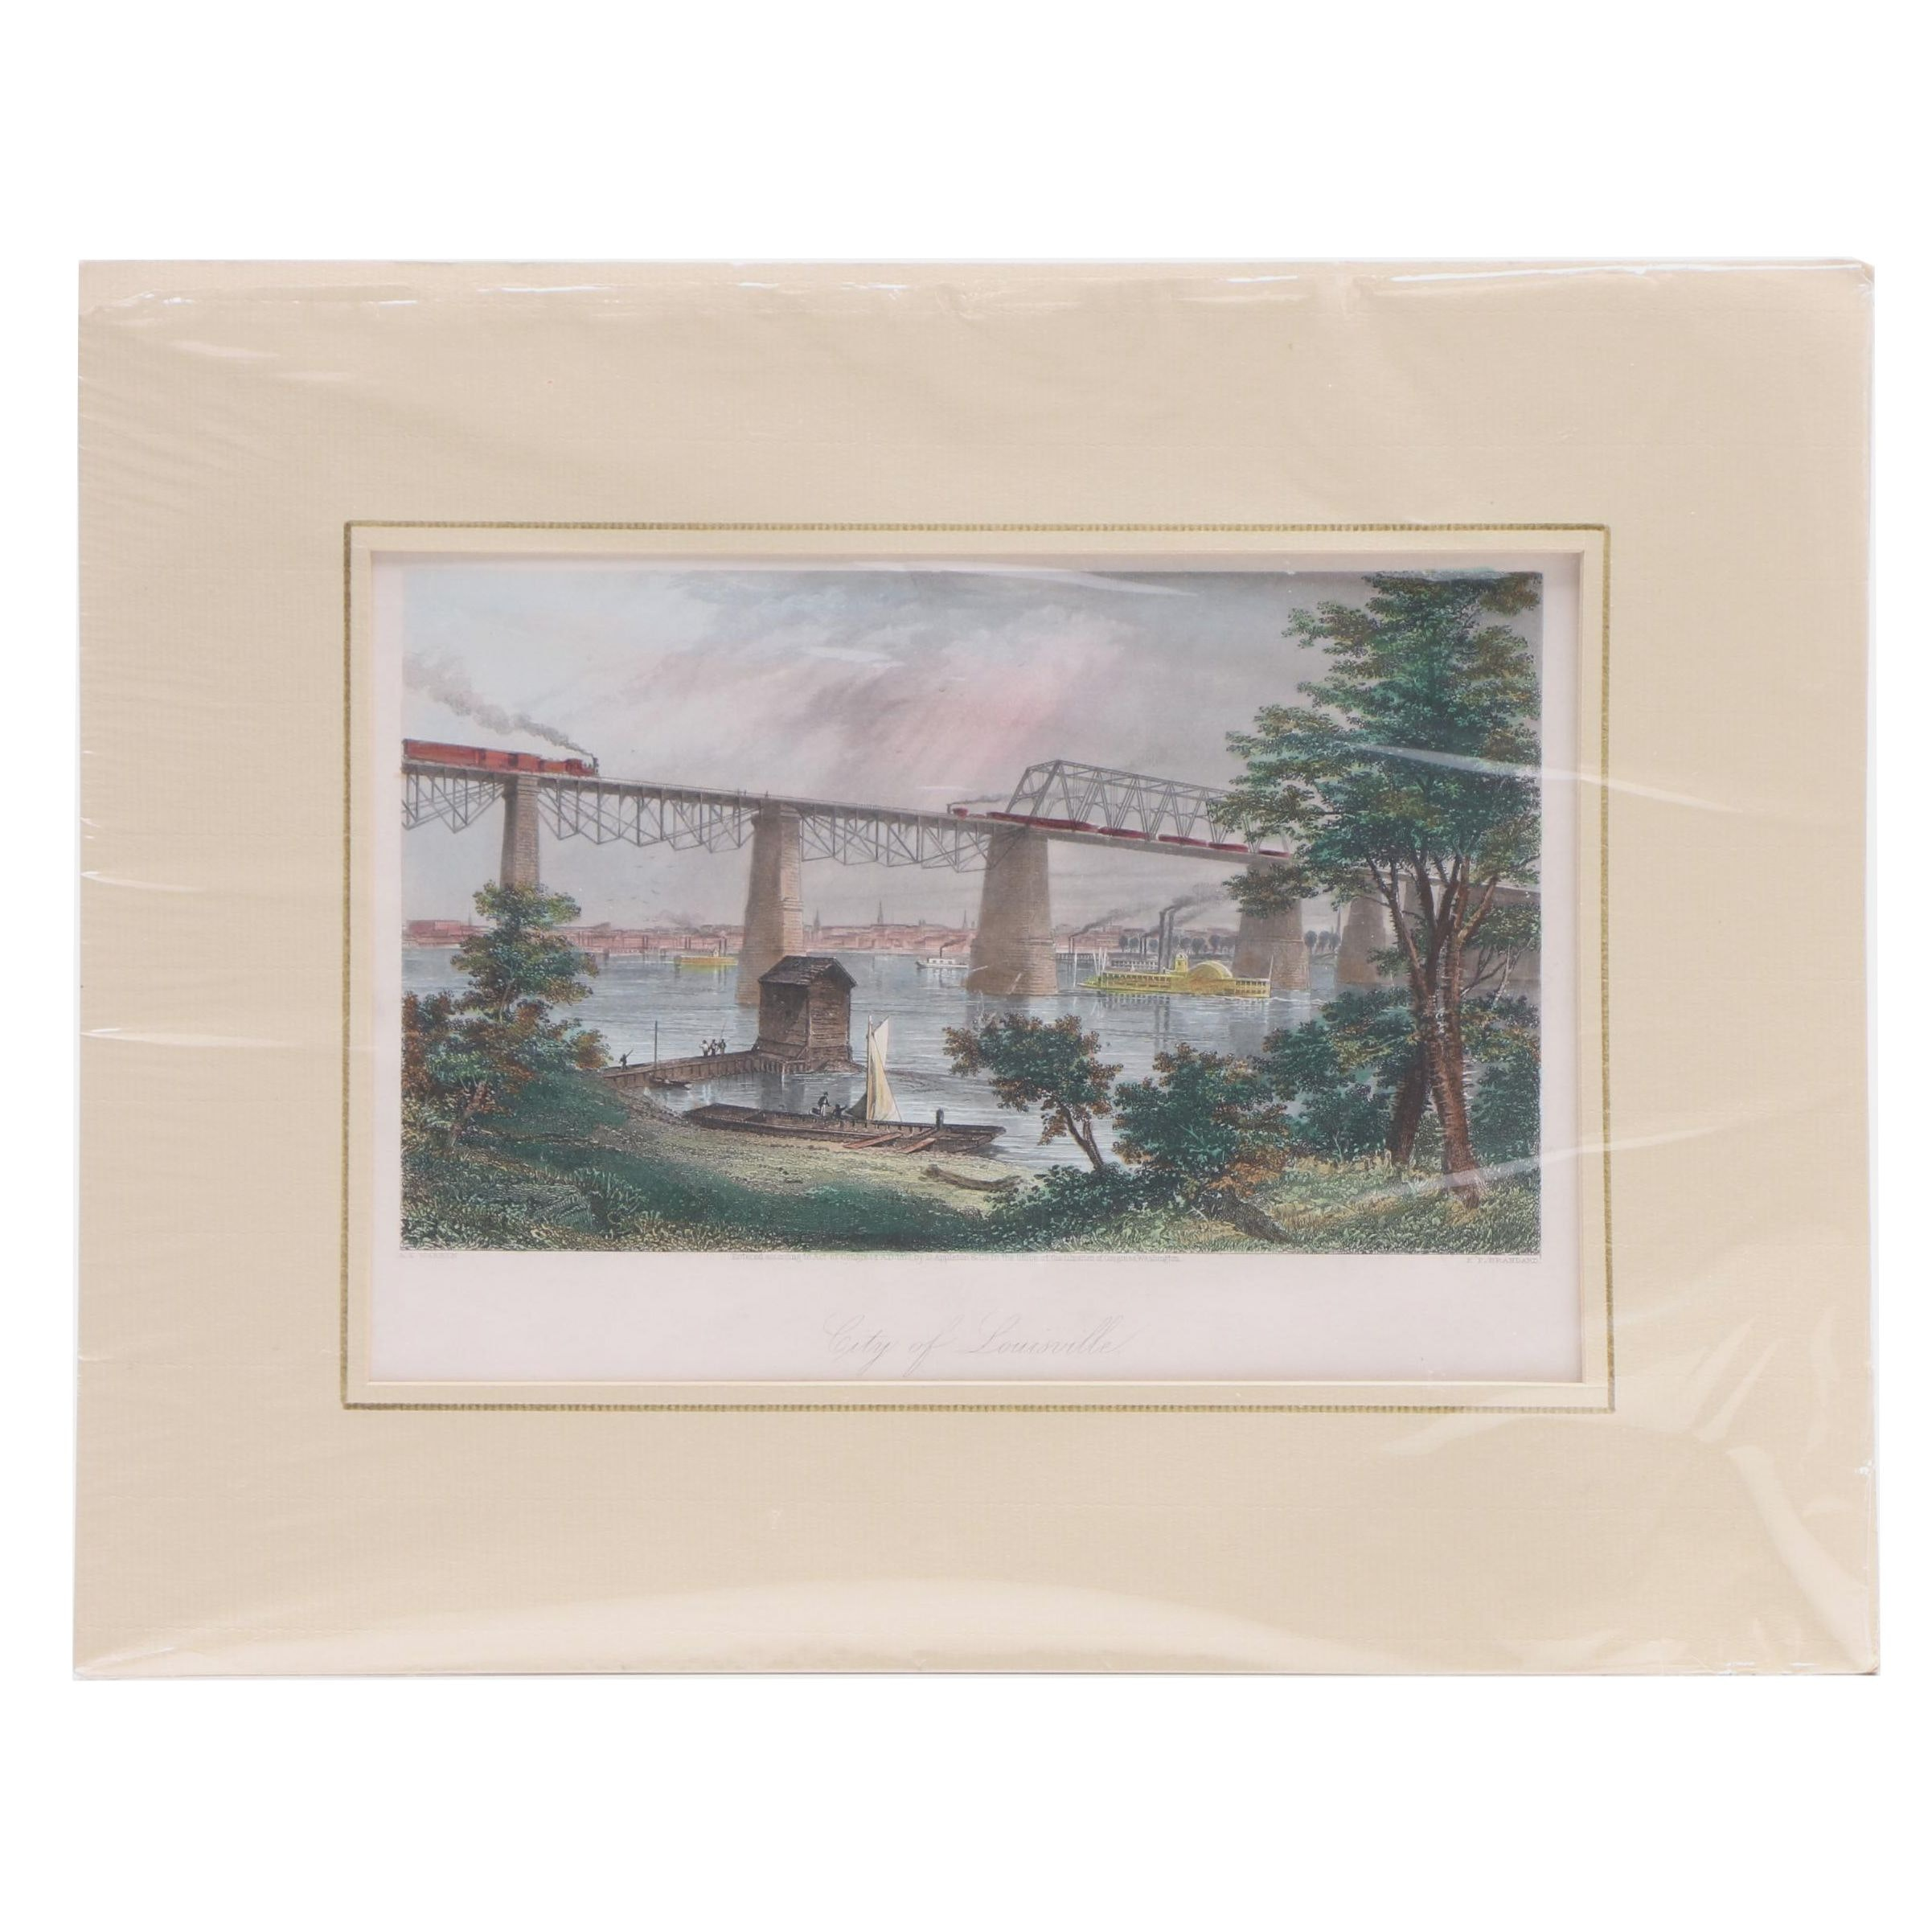 Hand Colored Steel Engraving After A. C. Warren by E. P. Brandard